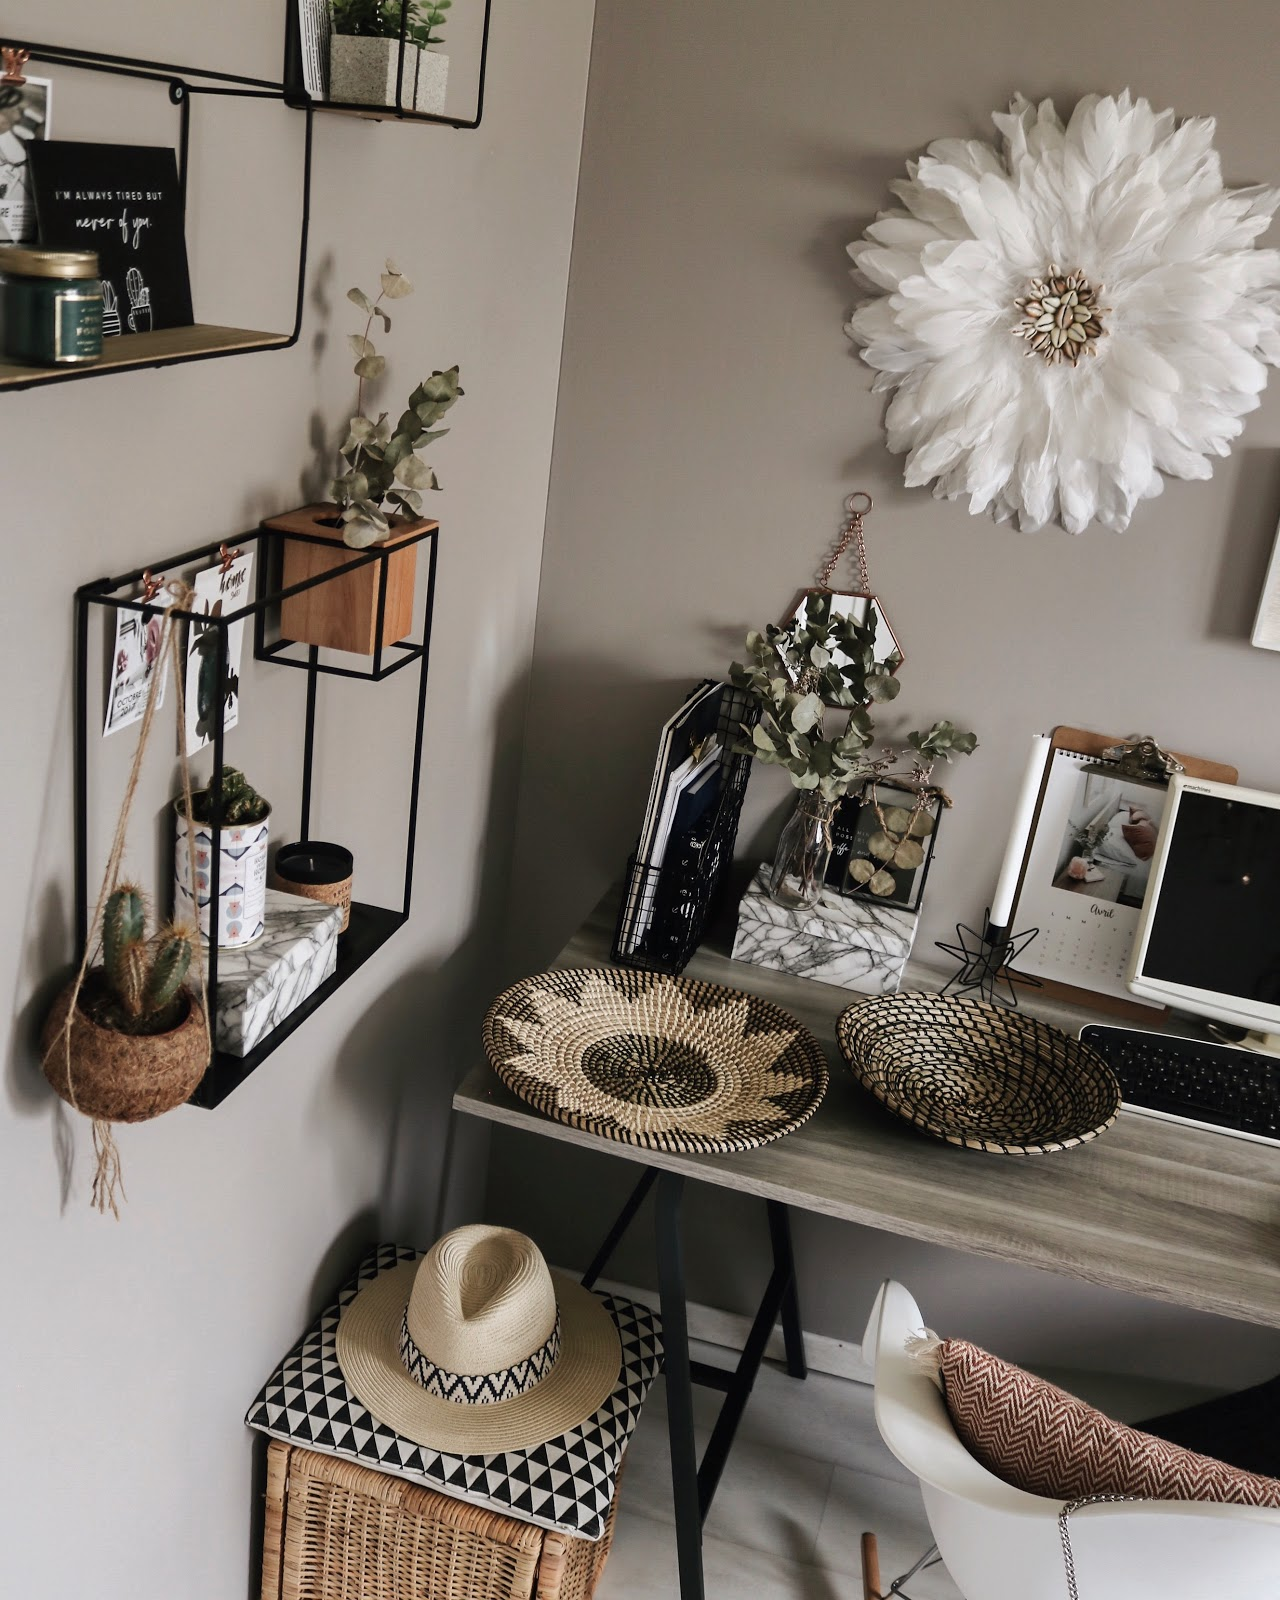 pauline-dress-blog-mode-deco-lifestyle-besancon-bureau-parlons-decoration-interieur-inspirations-selection-eshop